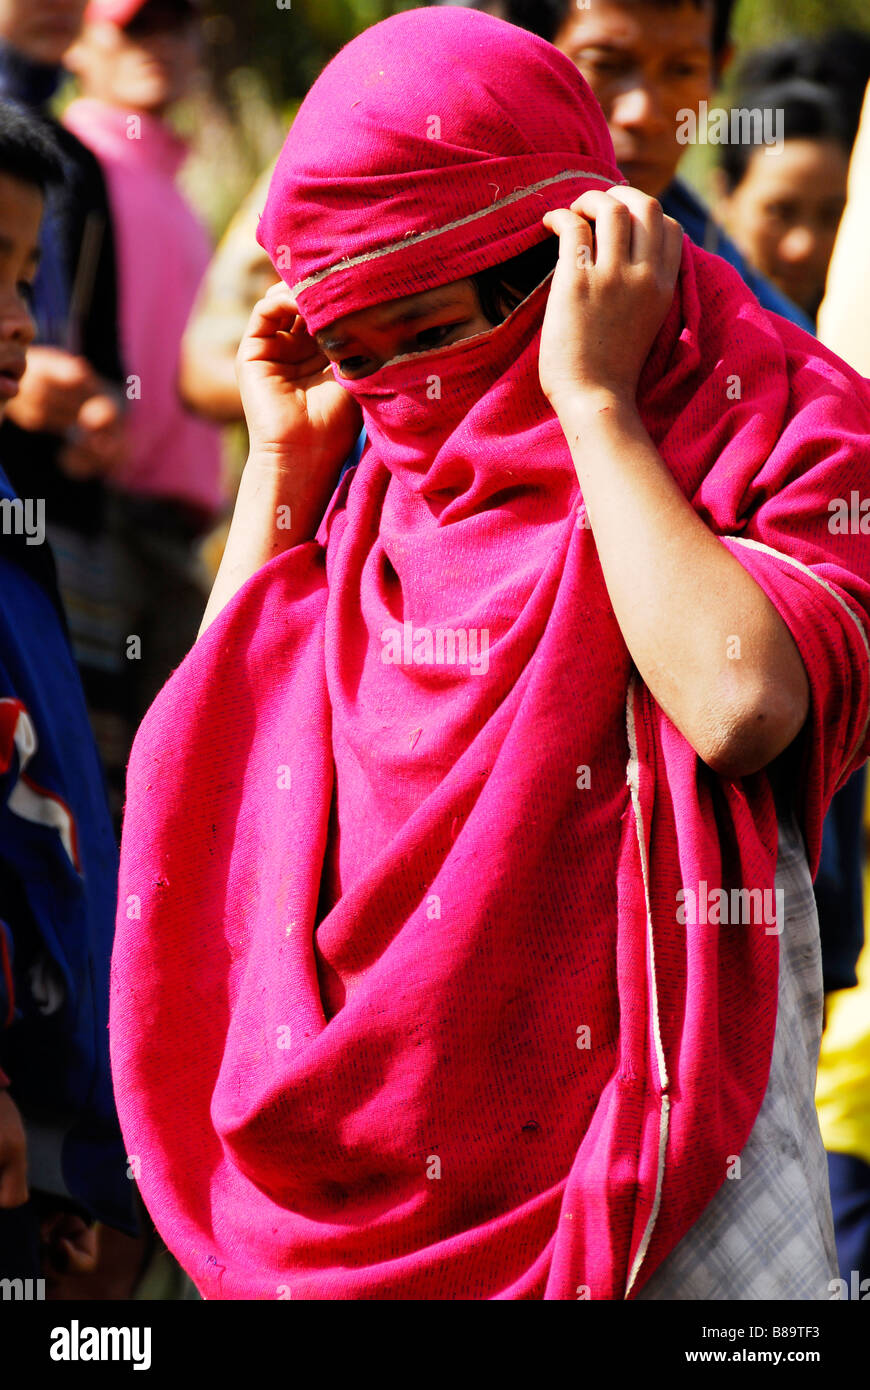 Karen kid with pink clothe cover her face from the sun,Tak,Northern Thailand. - Stock Image